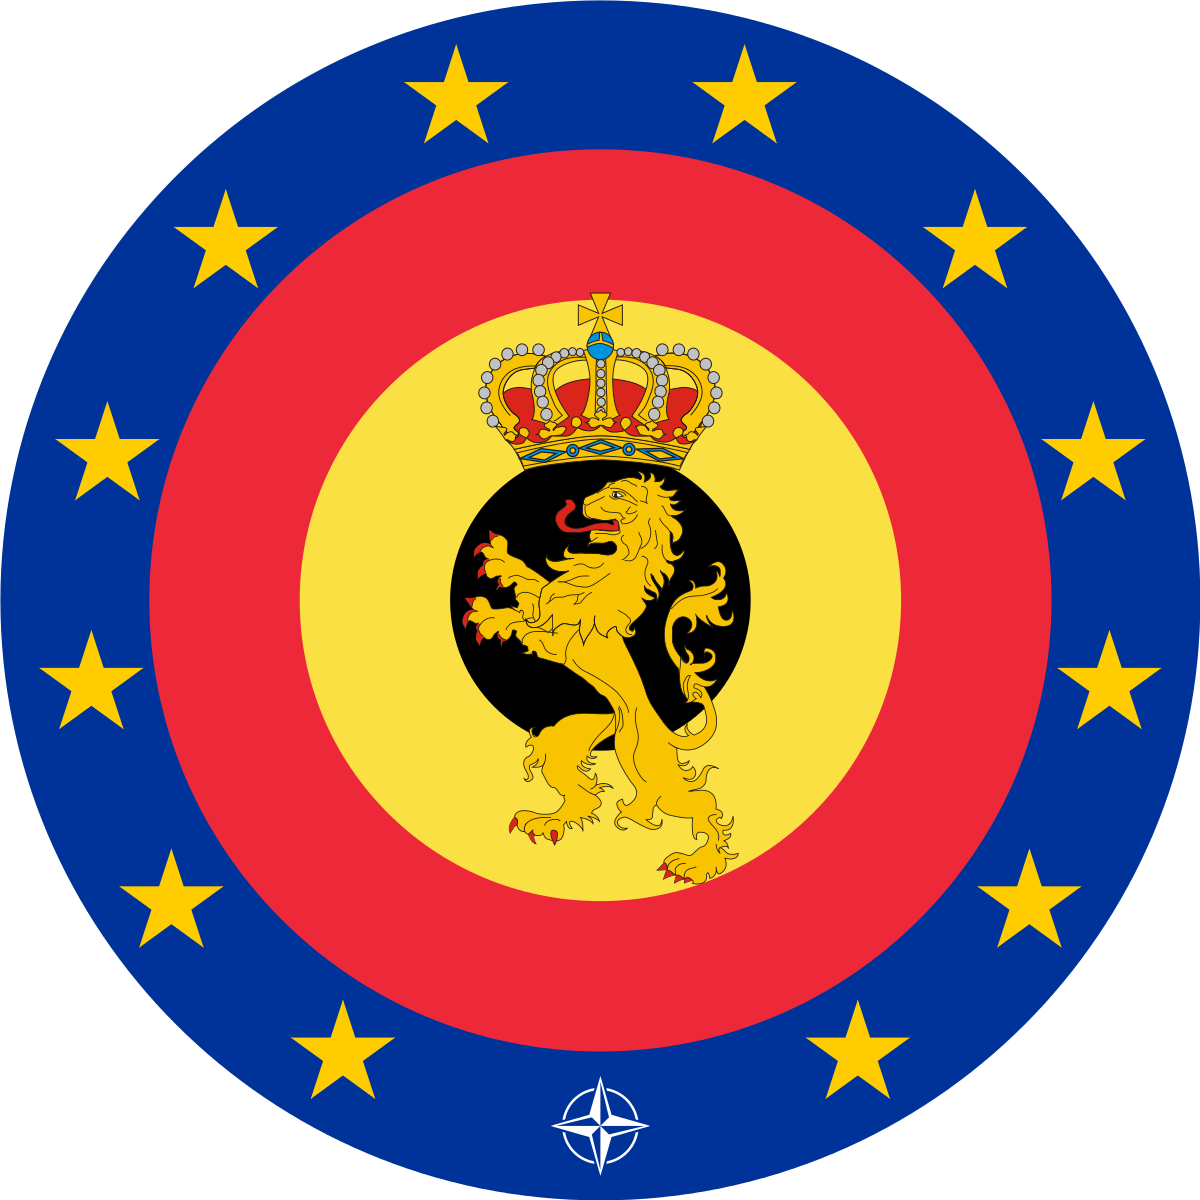 Drawing timelines history belgium. Belgian armed forces wikipedia